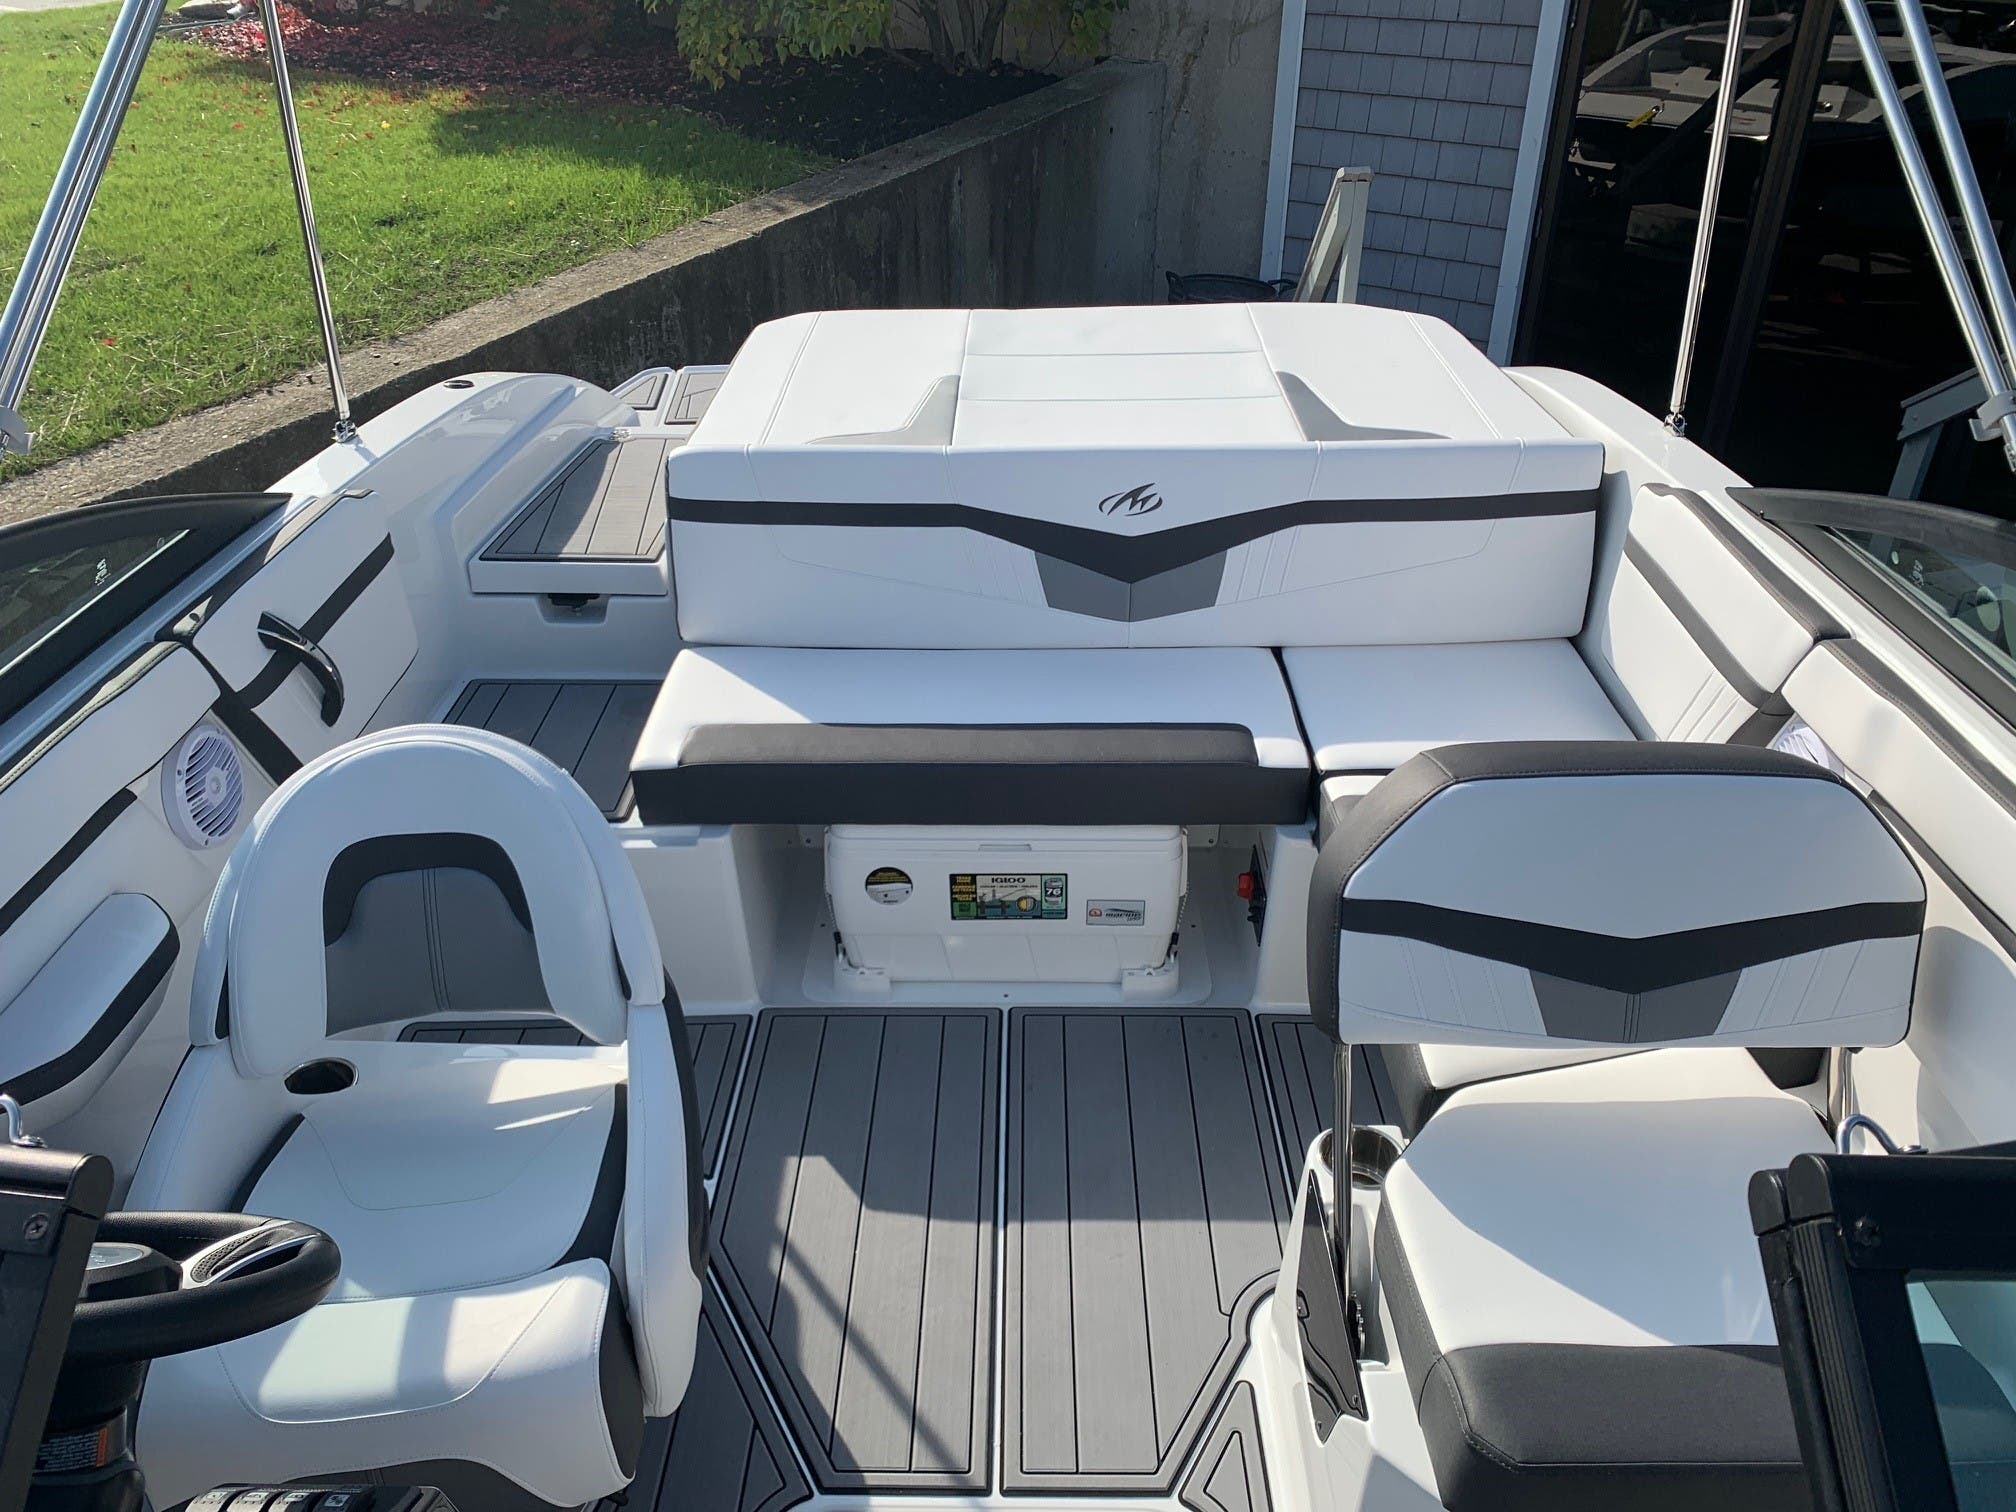 2021 Monterey boat for sale, model of the boat is M 22 & Image # 3 of 13